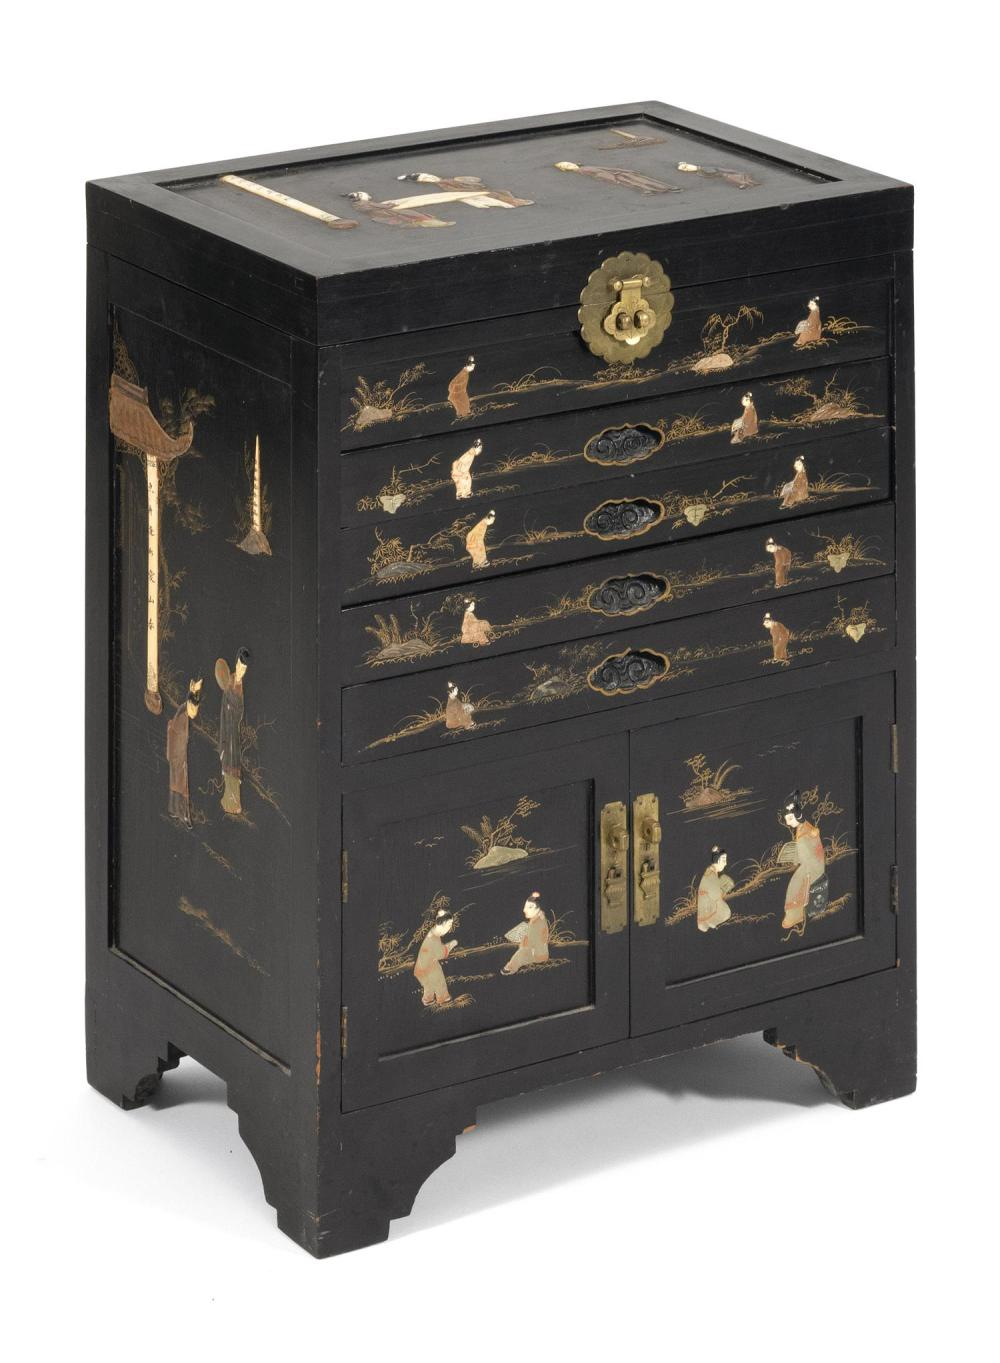 CHINESE PIETRA DURA ON BLACK LACQUERED WOOD SILVER CABINET With four drawers over a two-door cupboard. Top decorated with figures in...